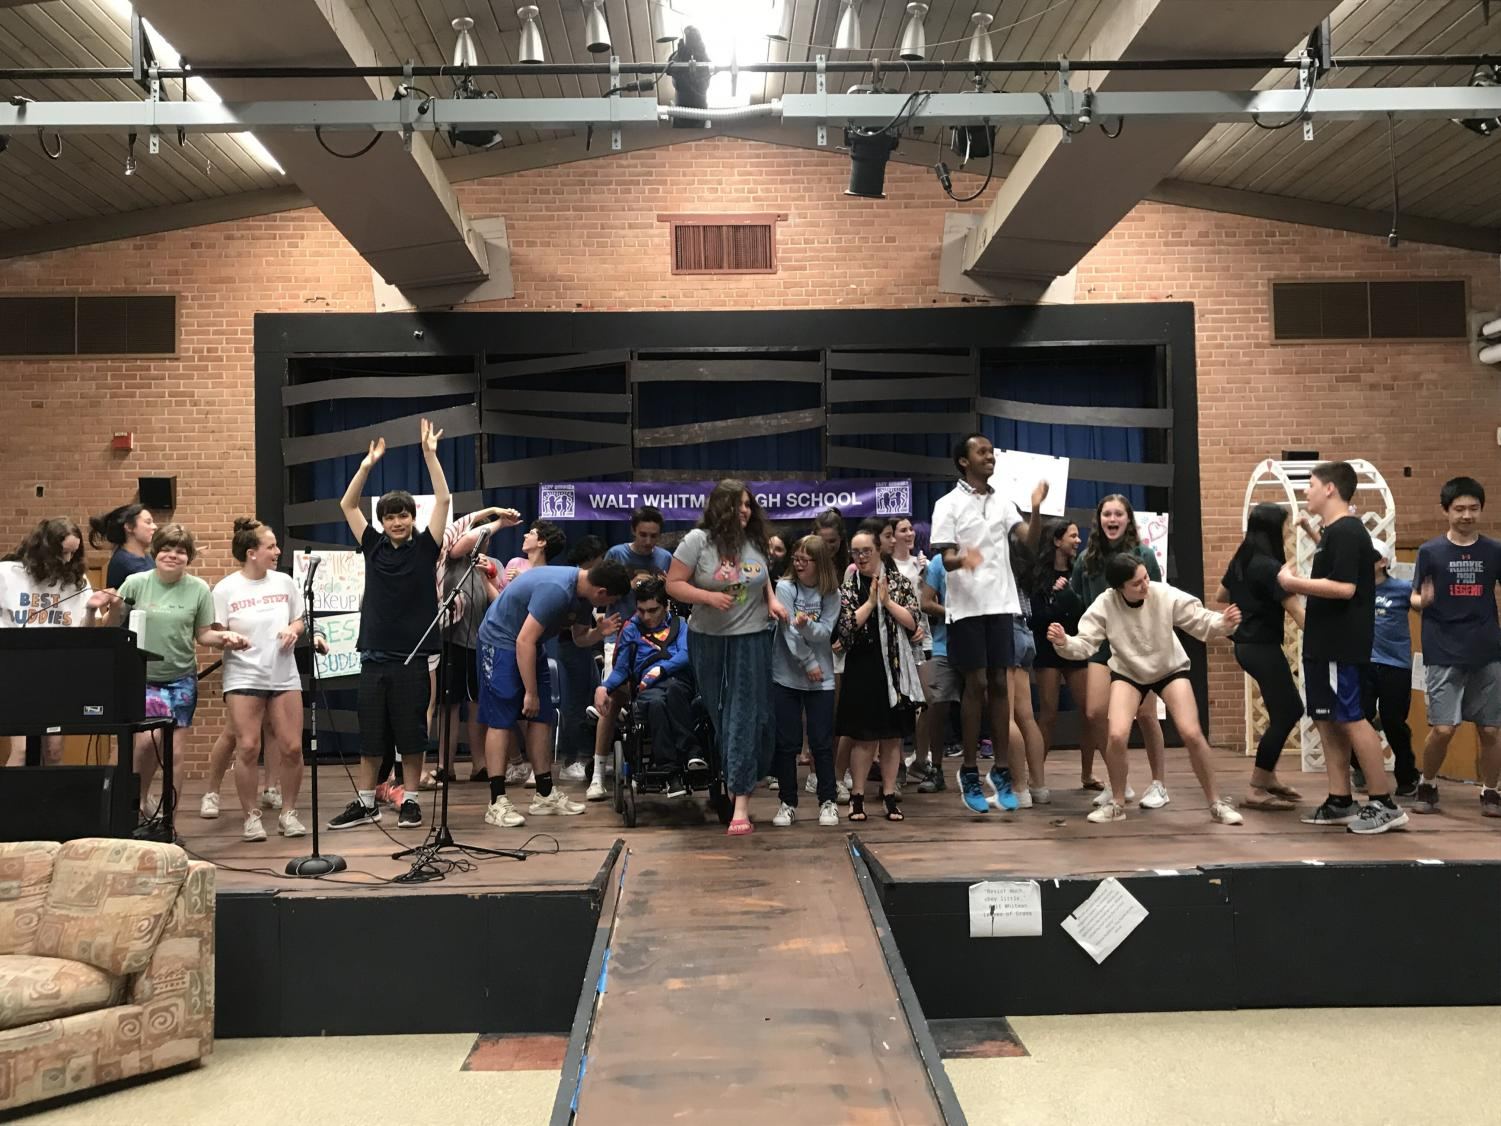 Best Buddies talent show participants celebrate with a dance party. The talent show featured 15 acts from groups of three to five performers.